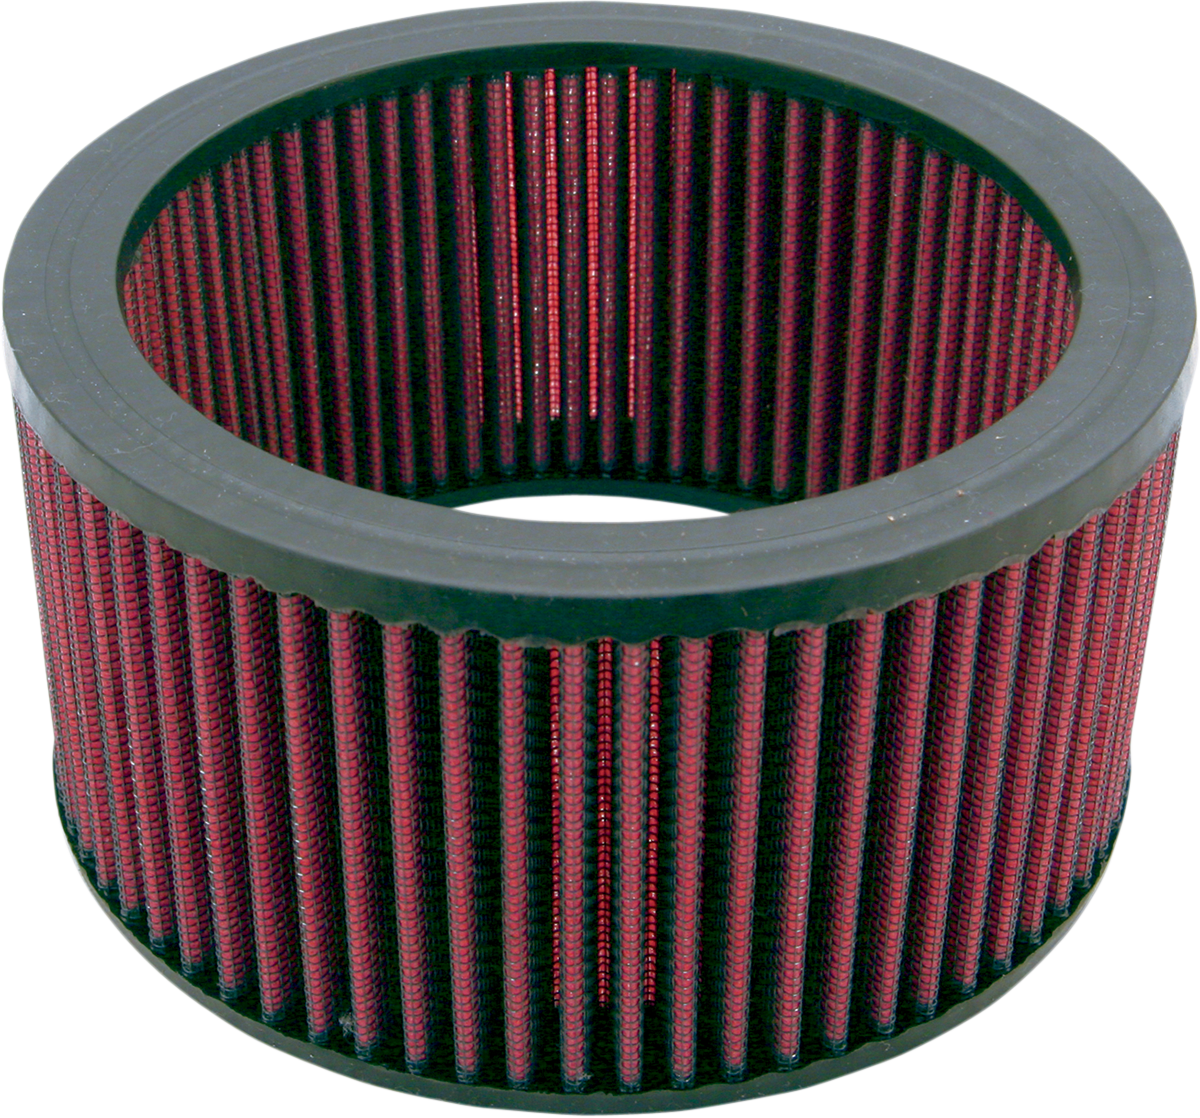 S&S Cycles E&G Carb Gauze Round High Flow Motorcycle Carburetor Air Filter